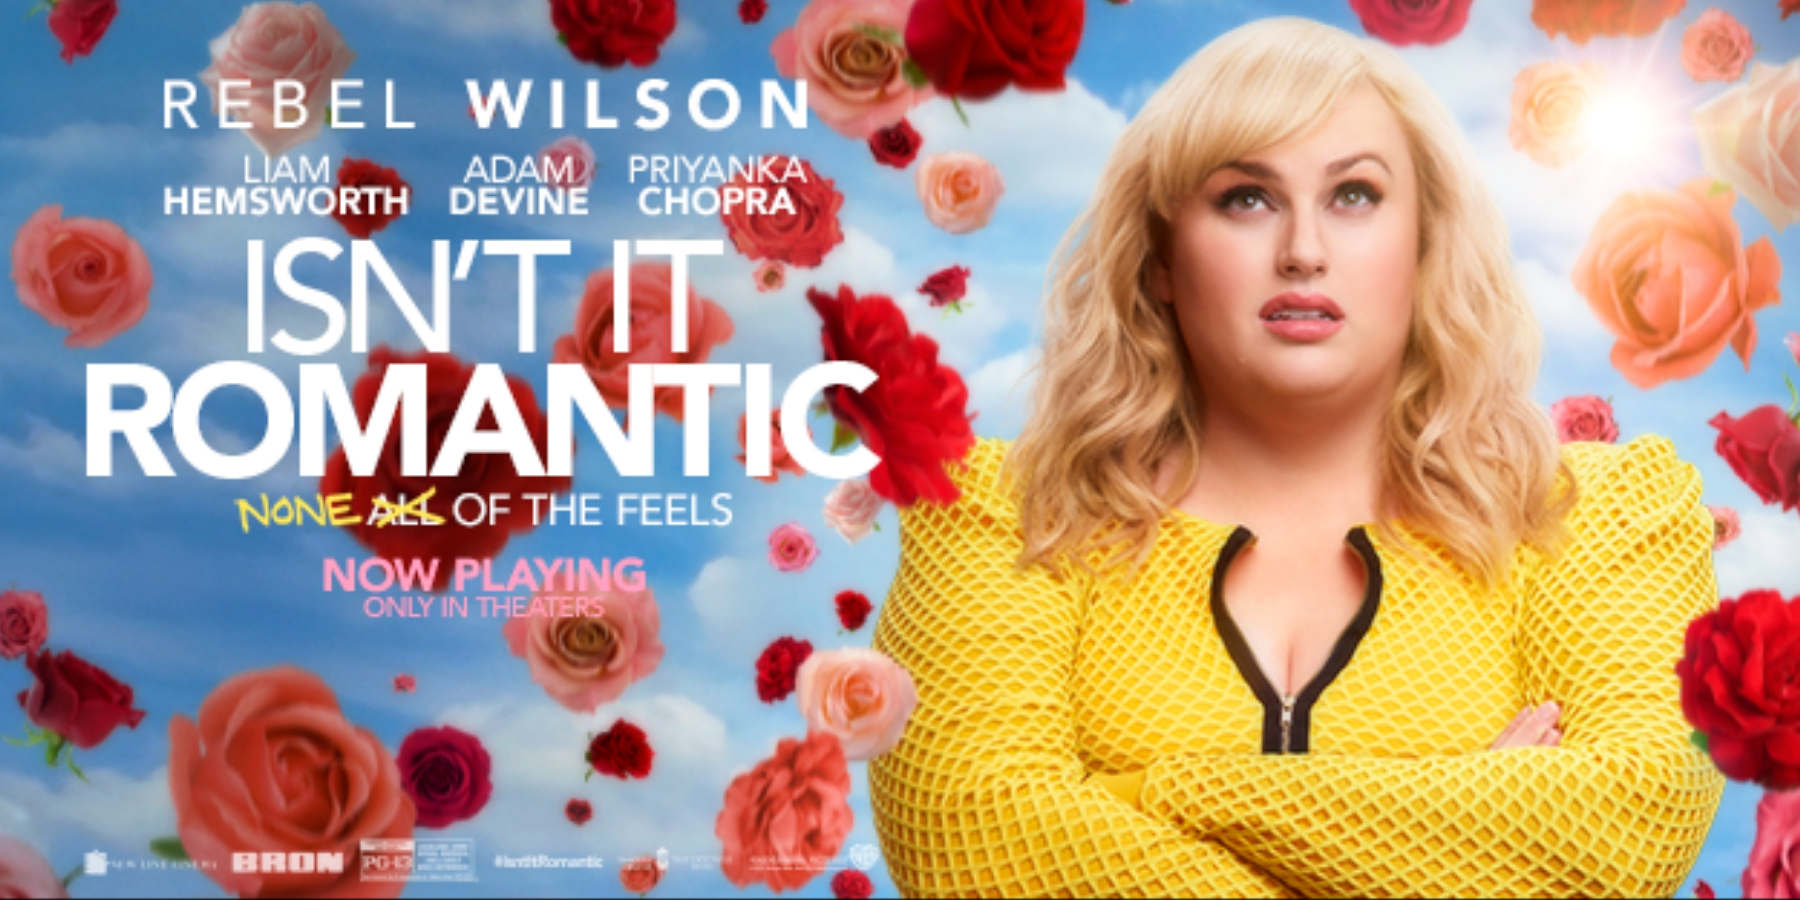 Rebel Wilson is charming, funny, and entertaining in the new Netflix film, Isn't It Romantic